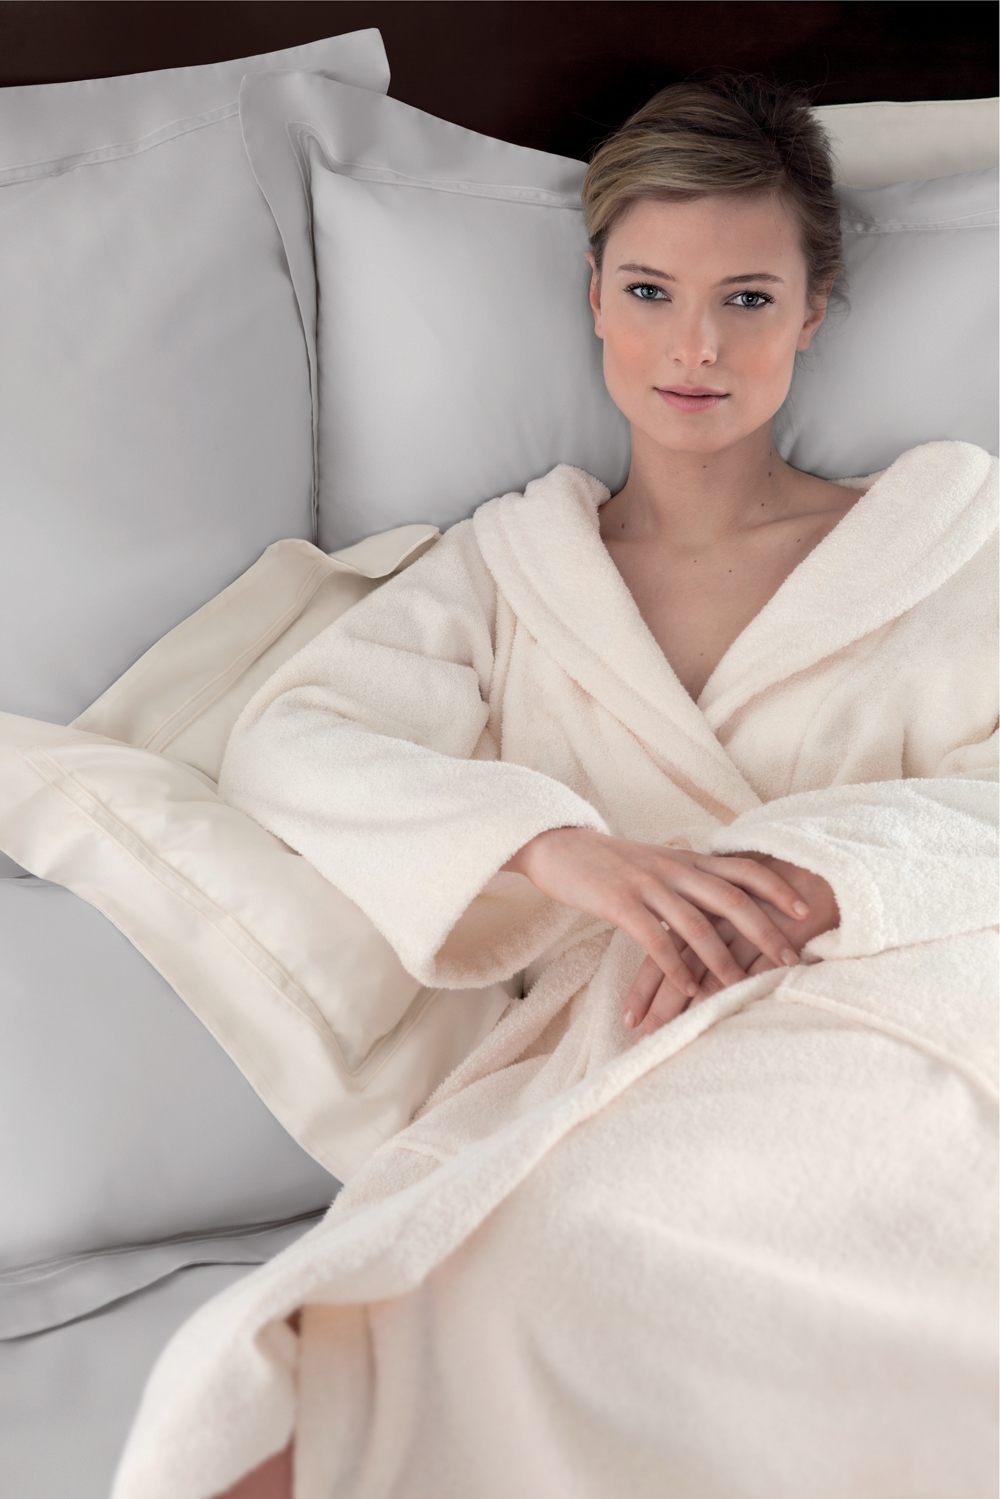 c996a58b78 Etoile Luxury Robe by Yves Delorme